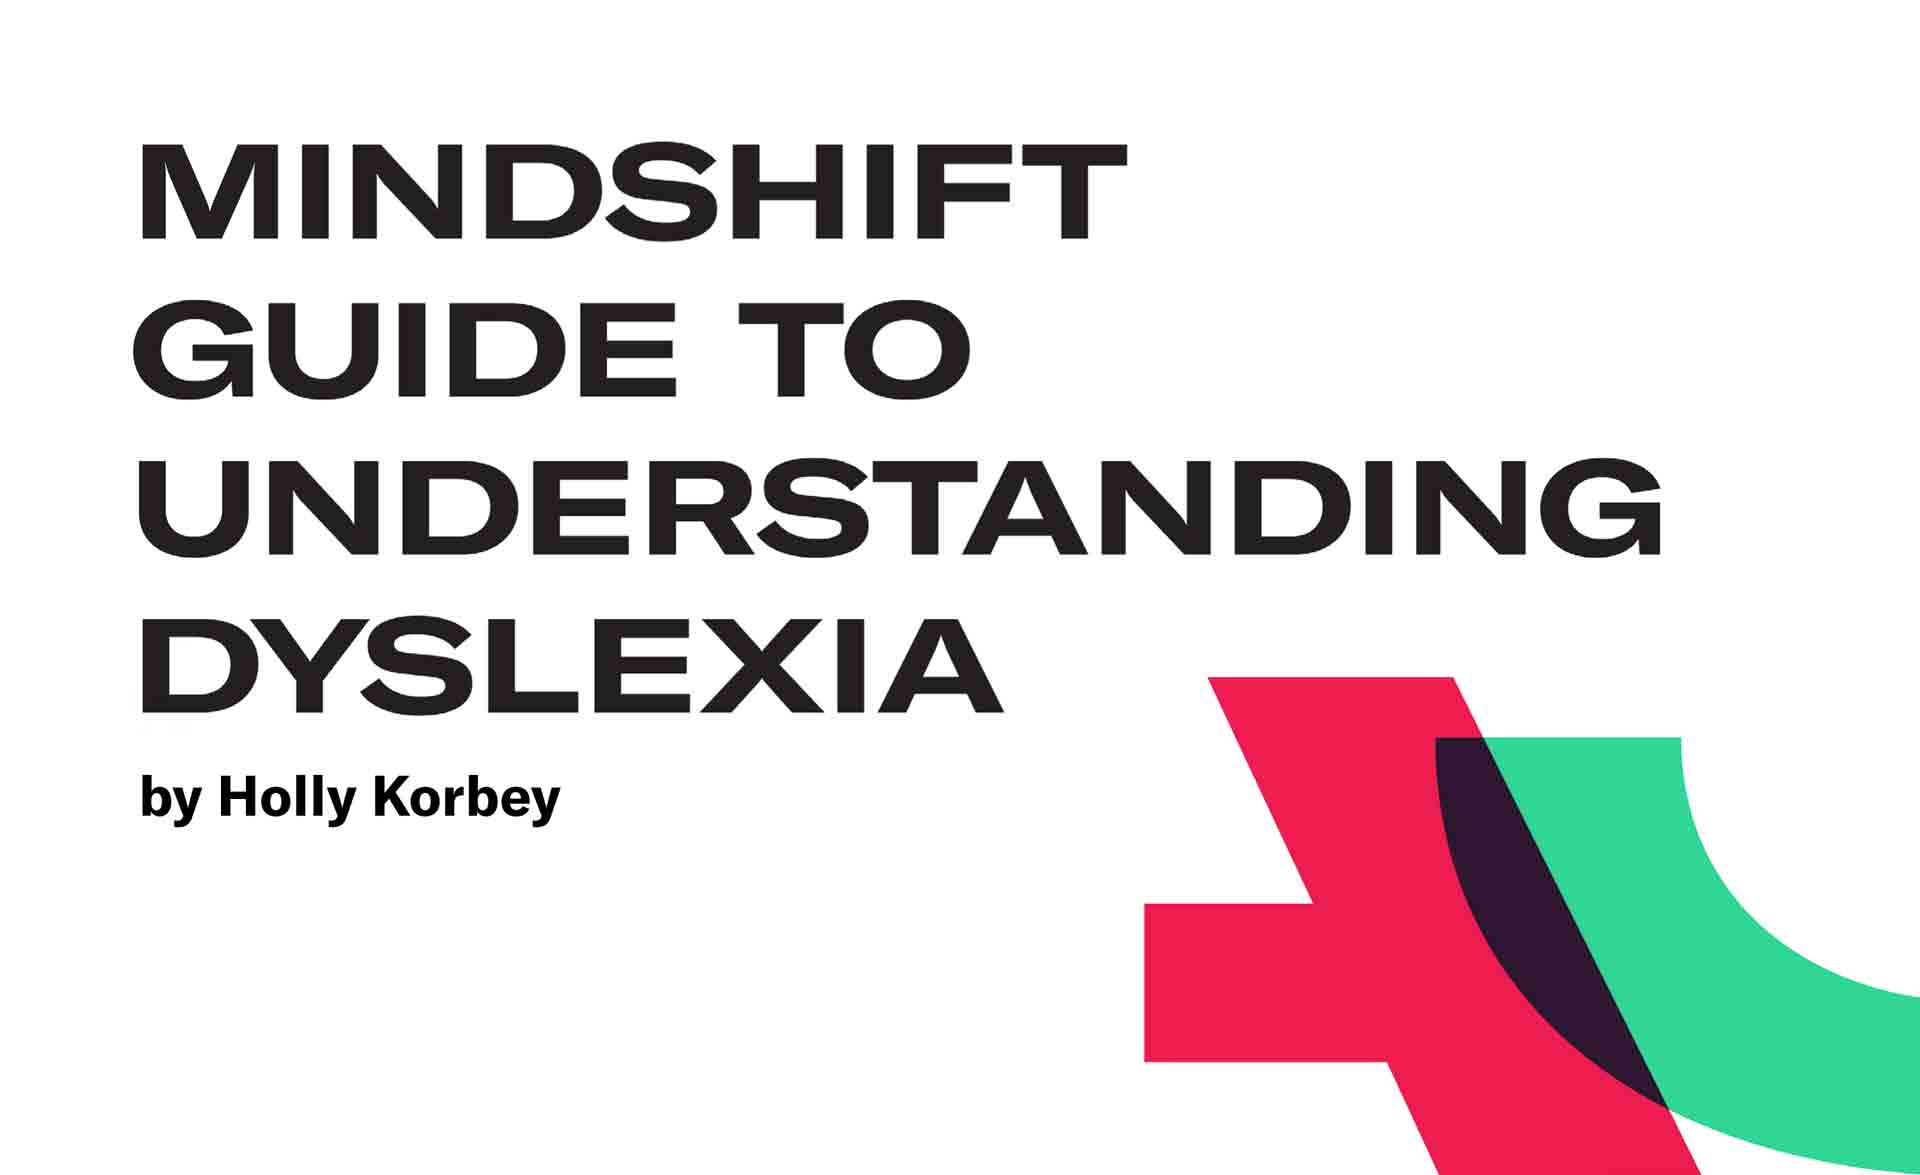 The MindShift Guide to Understanding Dyslexia